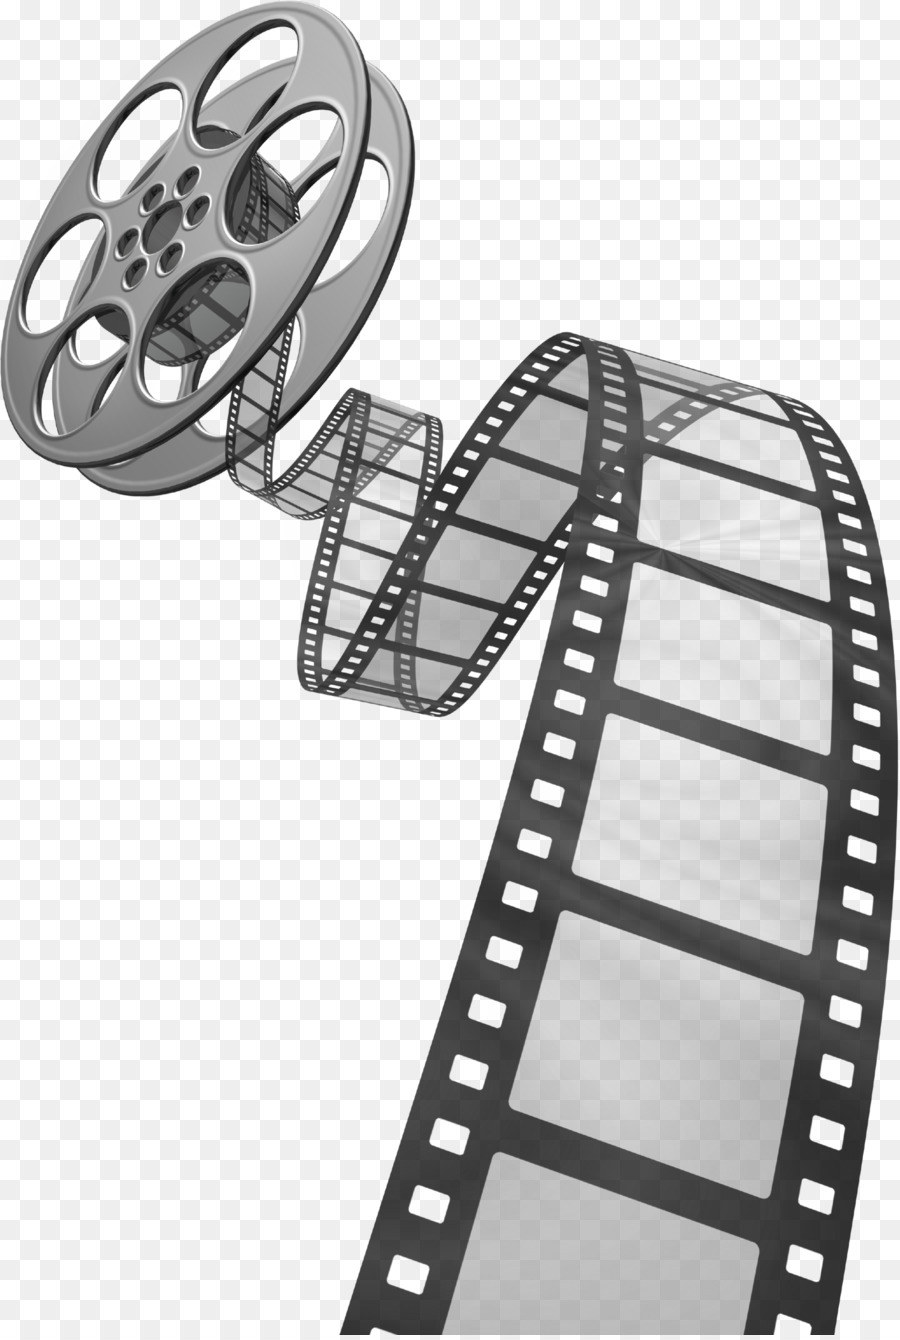 photographic film reel clip art movie film png download 1600 rh kisspng com movie film strip clipart movie film clipart